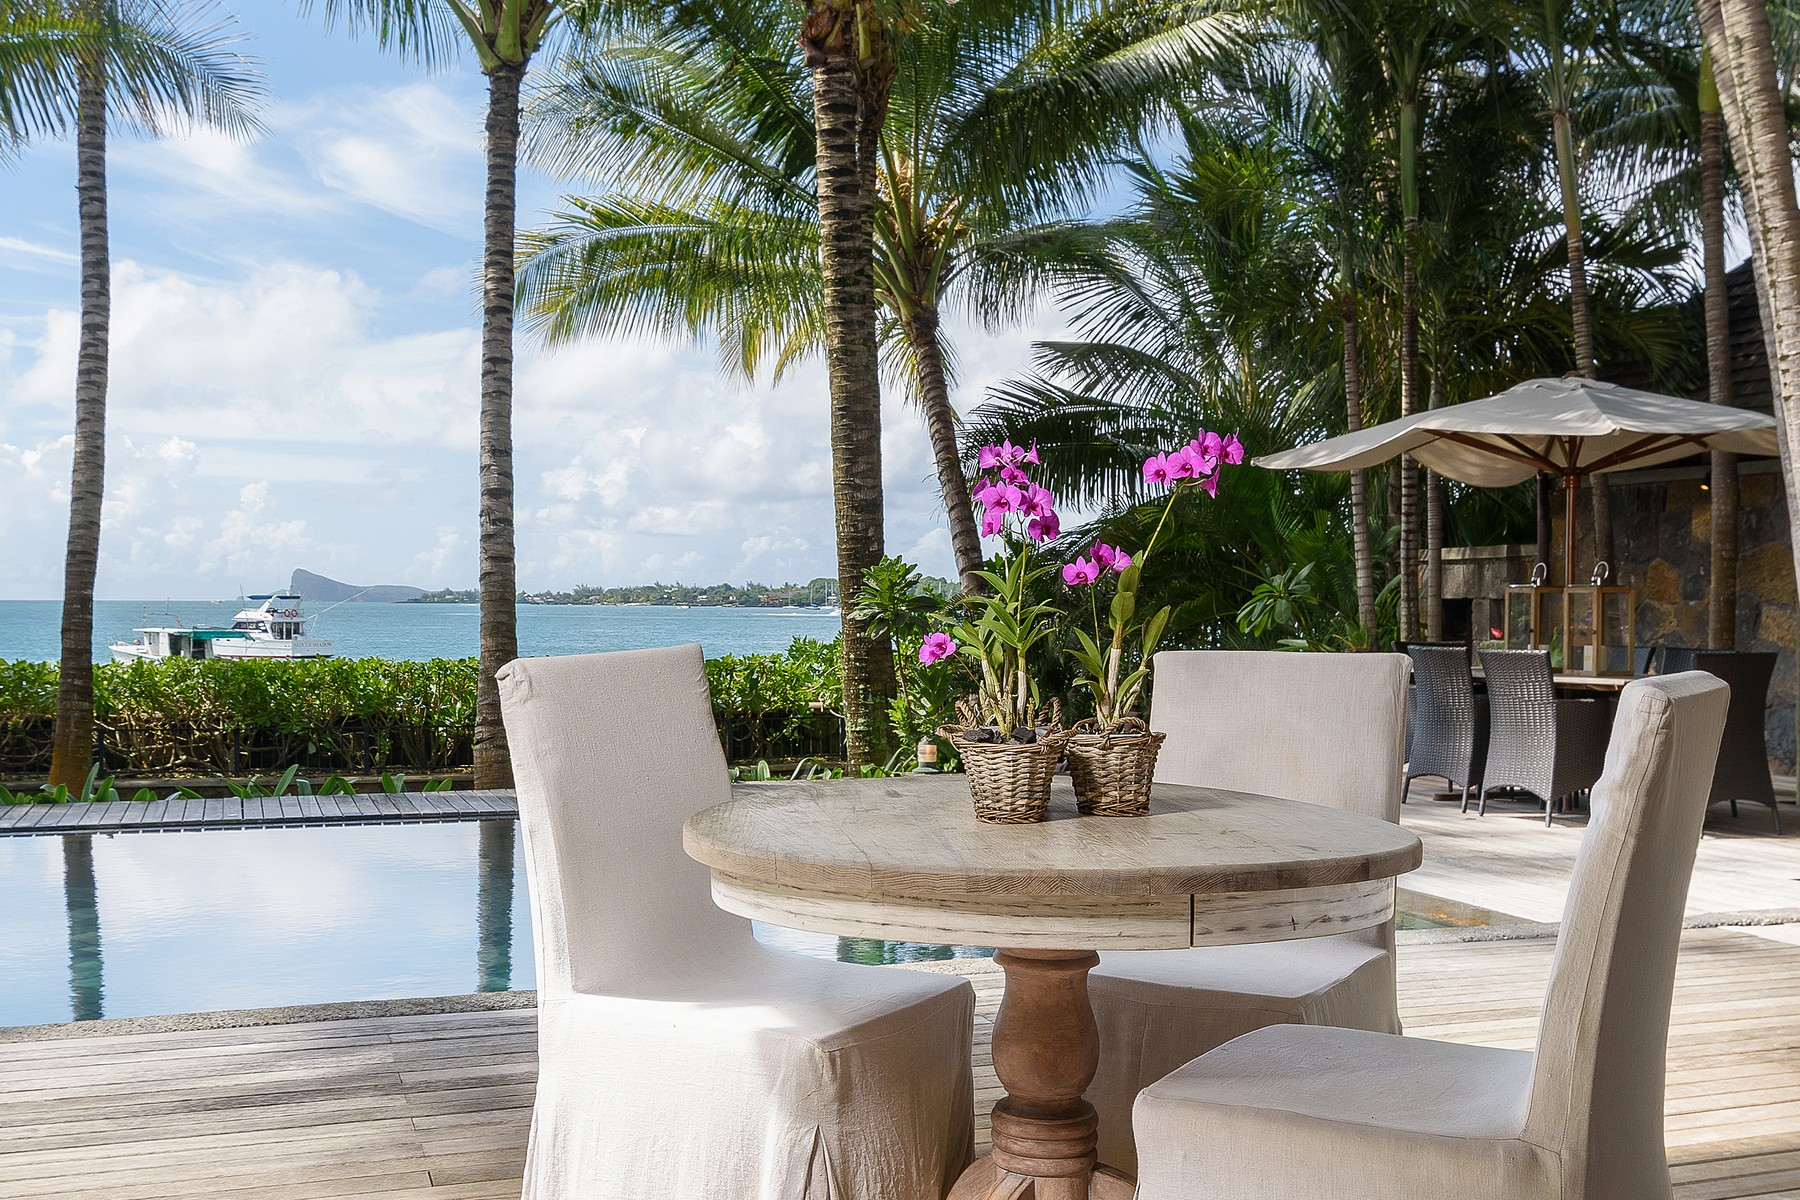 Single Family Home for Sale at Oceanfront Luxury Villa with Tropical surrounds Grand Baie, Riviere Du Rempart, Mauritius